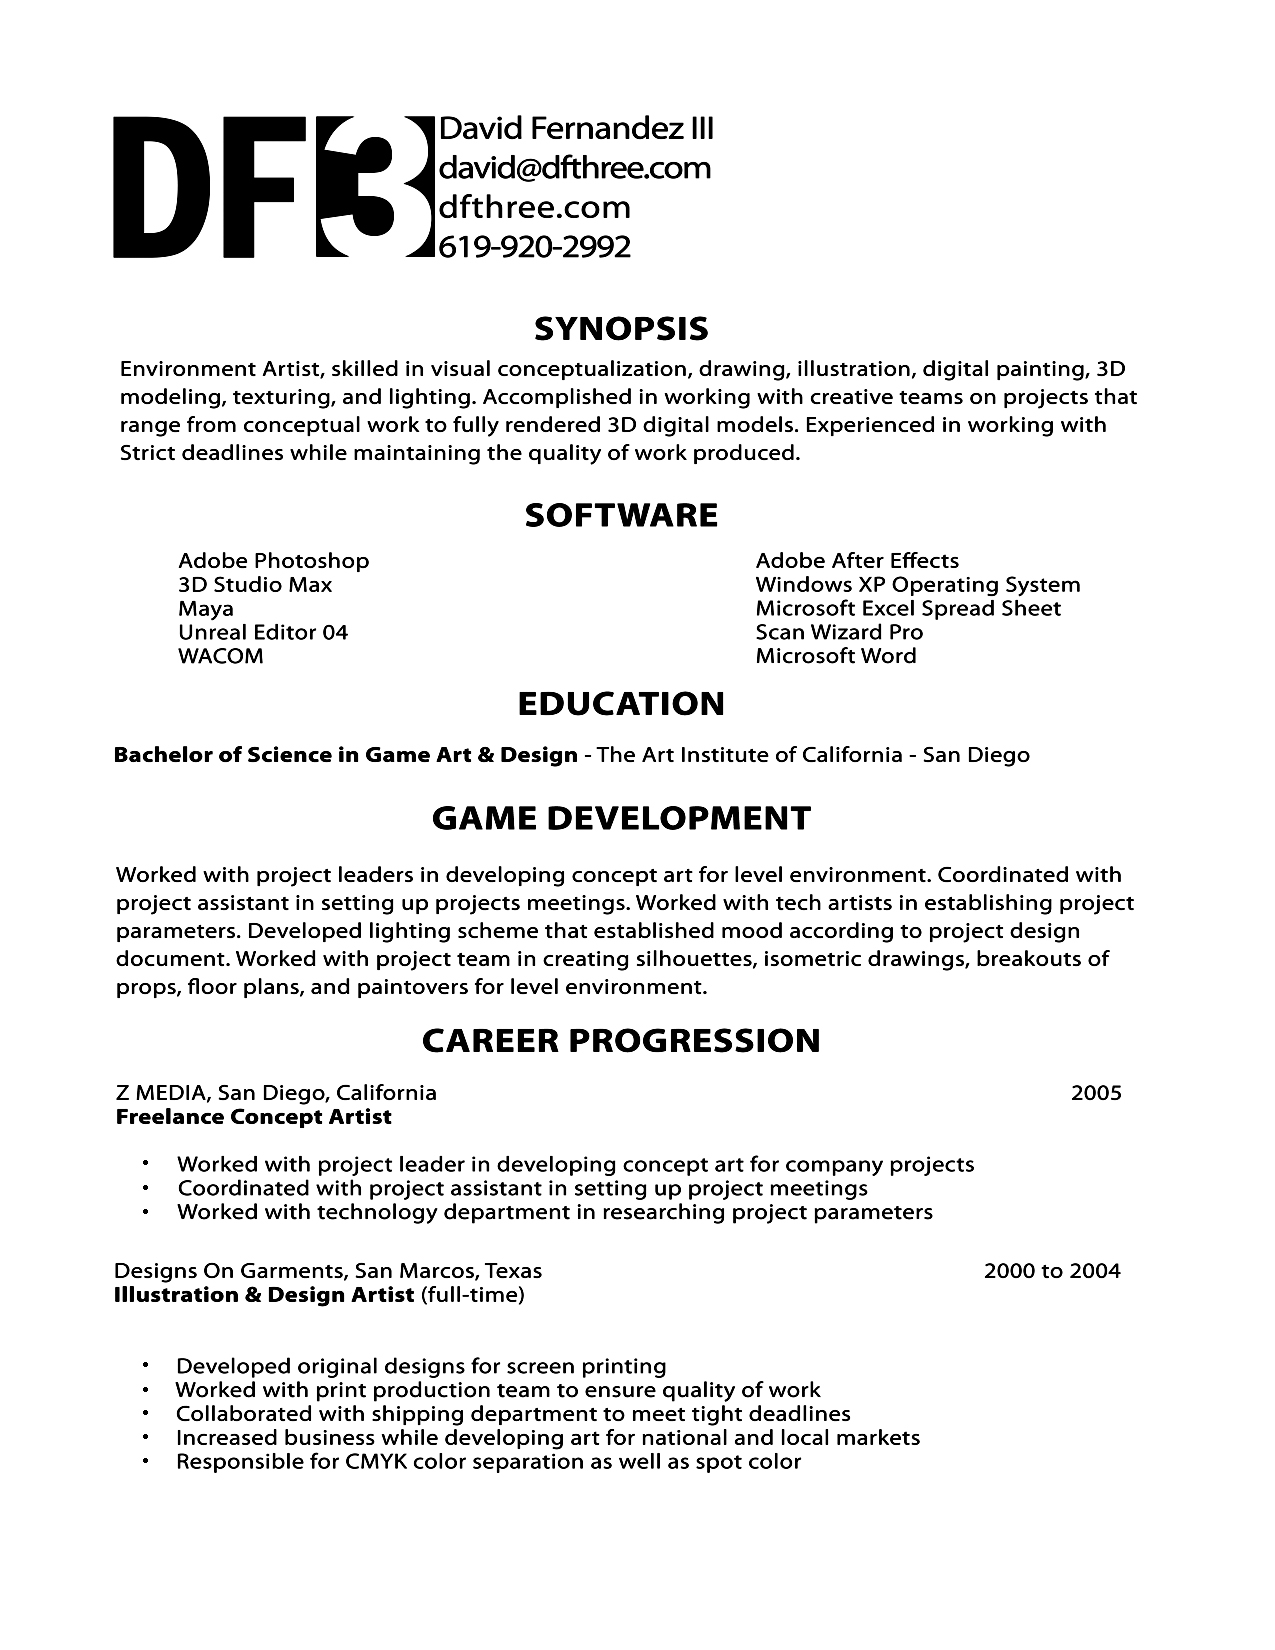 Opposenewapstandardsus  Pleasant Game Developer Resume Game Tester Resume Sample Game Tester  With Exquisite Better Jobs Faster With Astounding Cashier Resumes Also General Resume Skills In Addition Resume Exampls And Air Force Resume As Well As Free Basic Resume Template Additionally Senior Accountant Resume Examples From Kelseymarieco With Opposenewapstandardsus  Exquisite Game Developer Resume Game Tester Resume Sample Game Tester  With Astounding Better Jobs Faster And Pleasant Cashier Resumes Also General Resume Skills In Addition Resume Exampls From Kelseymarieco